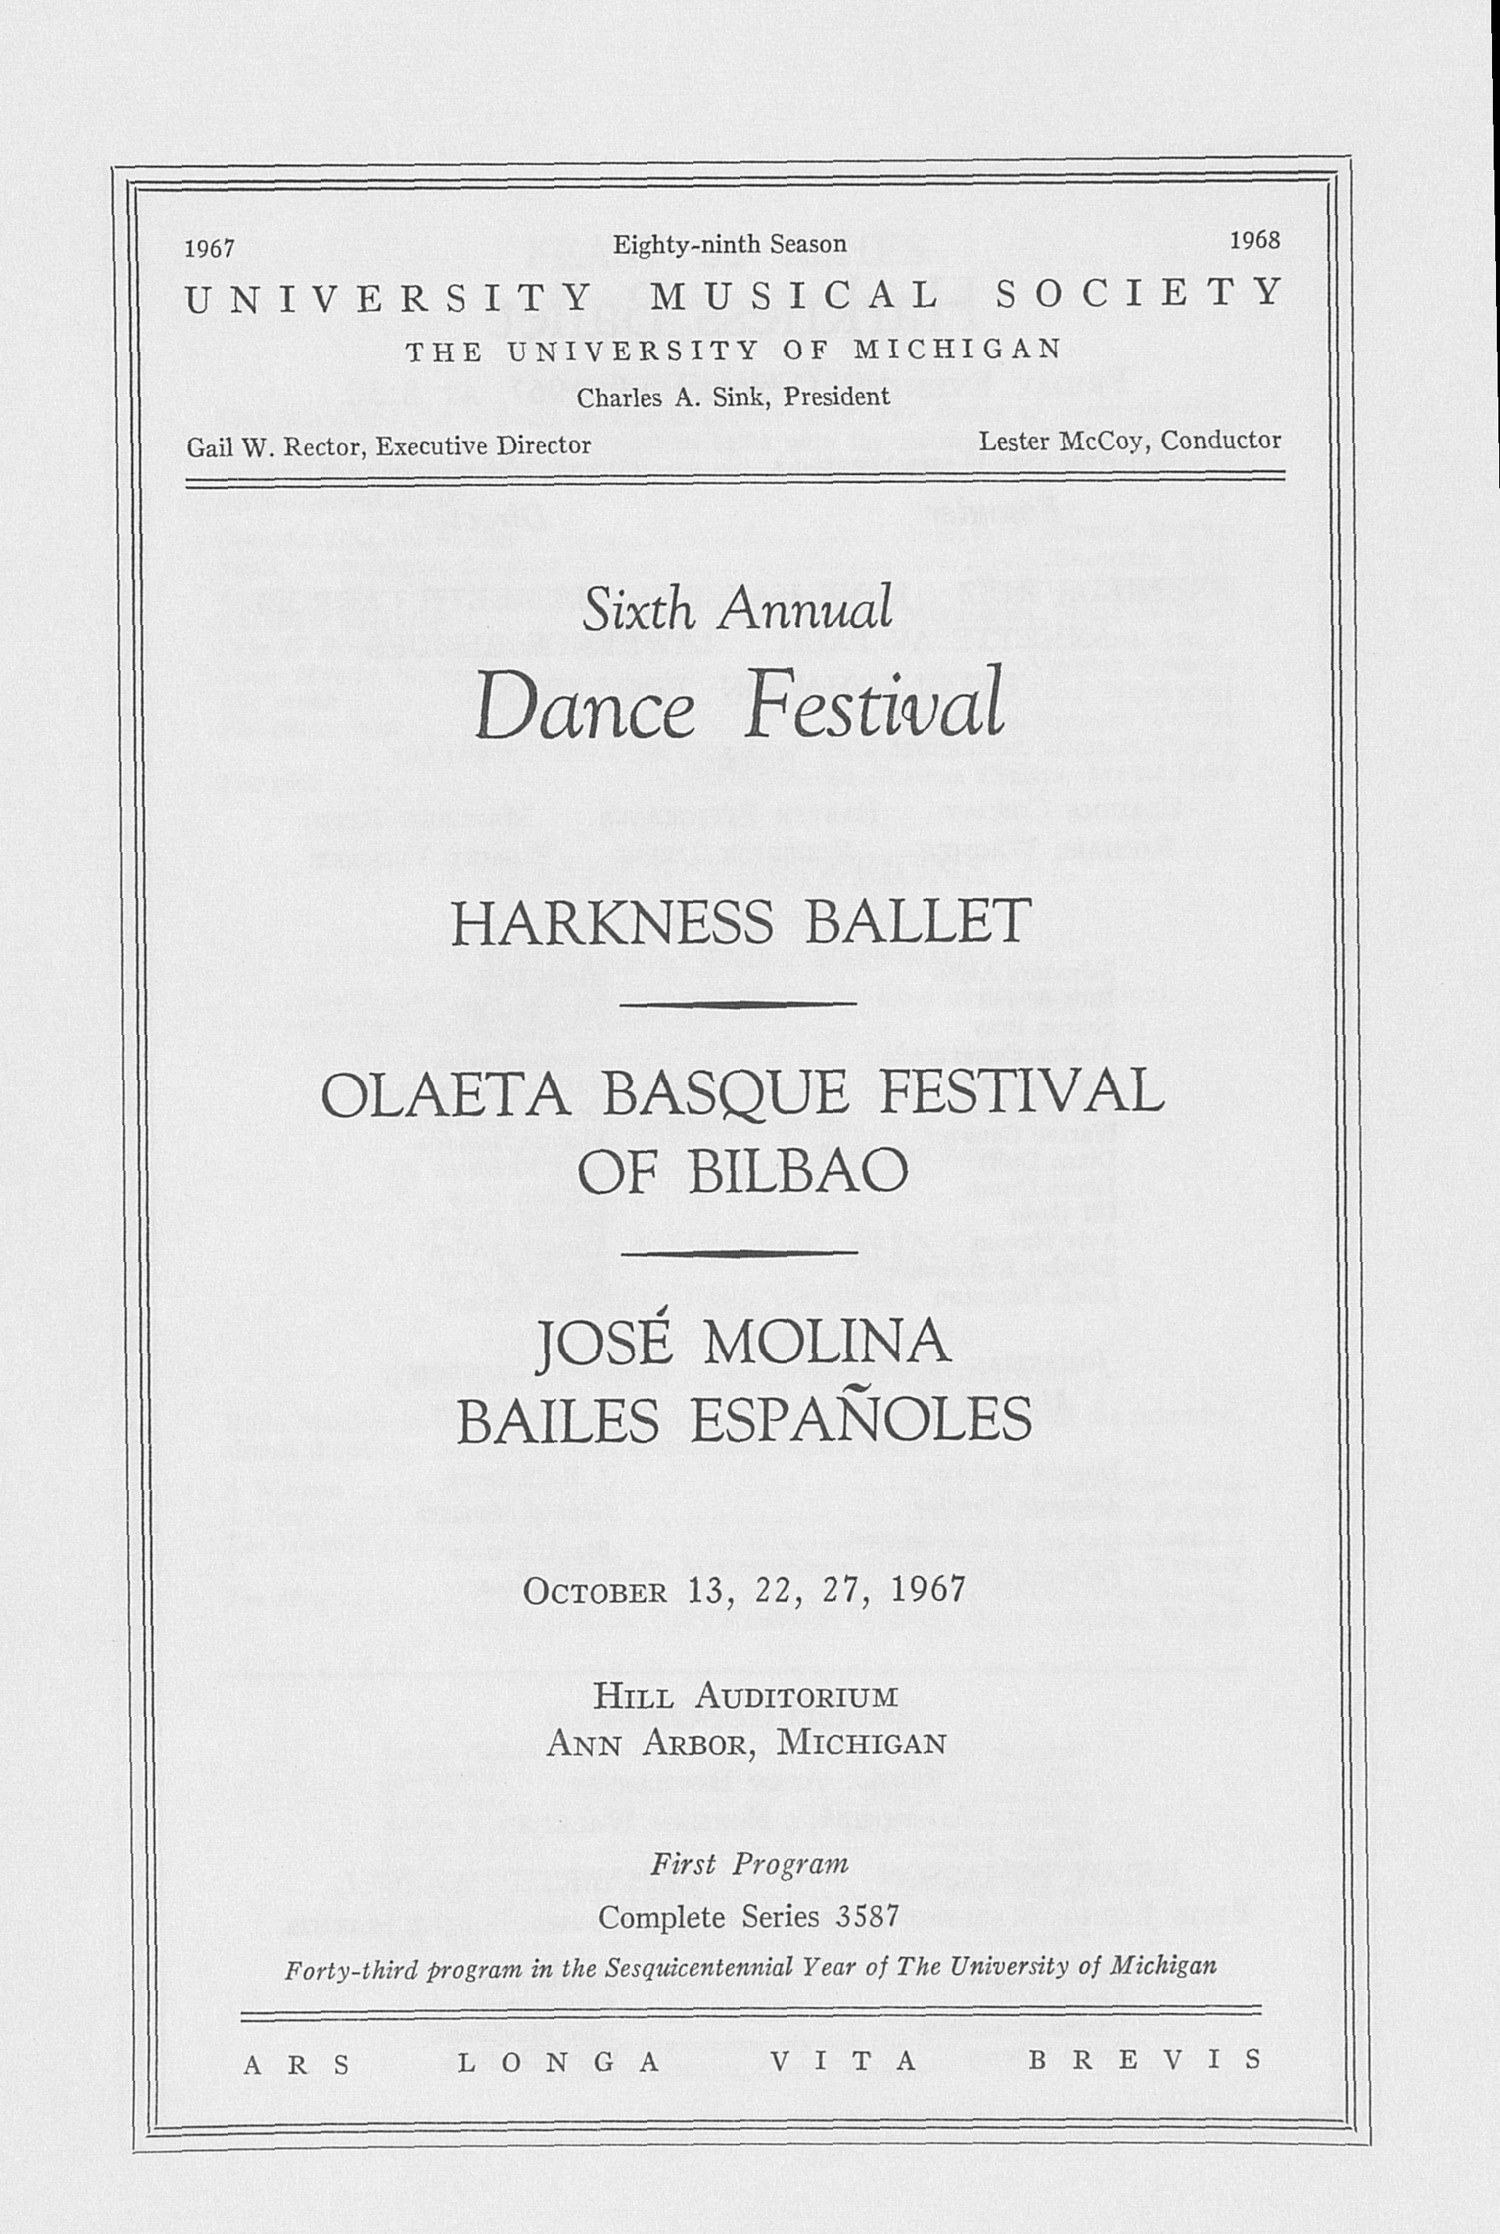 UMS Concert Program, October 13, 22, 27, 1967: Sixth Annual Dance Festival --  image